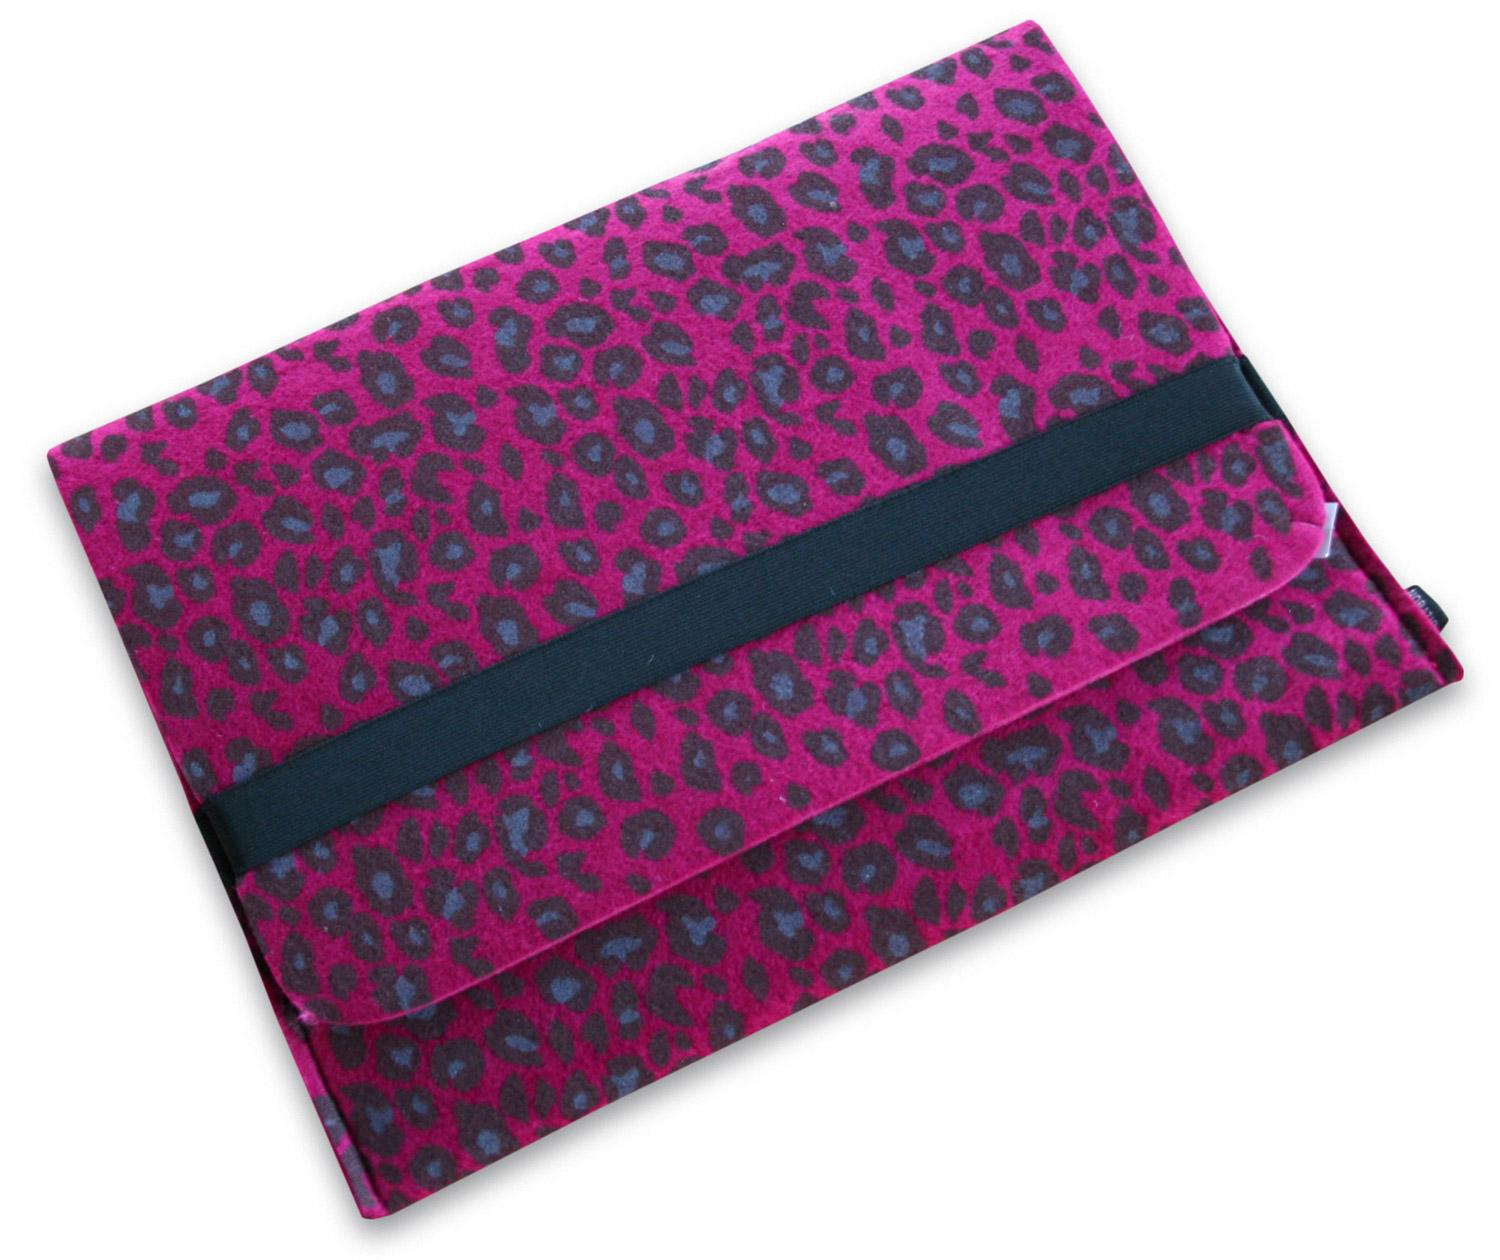 noratio notebooktasche sleeve f rr 13 3 zoll laptops. Black Bedroom Furniture Sets. Home Design Ideas